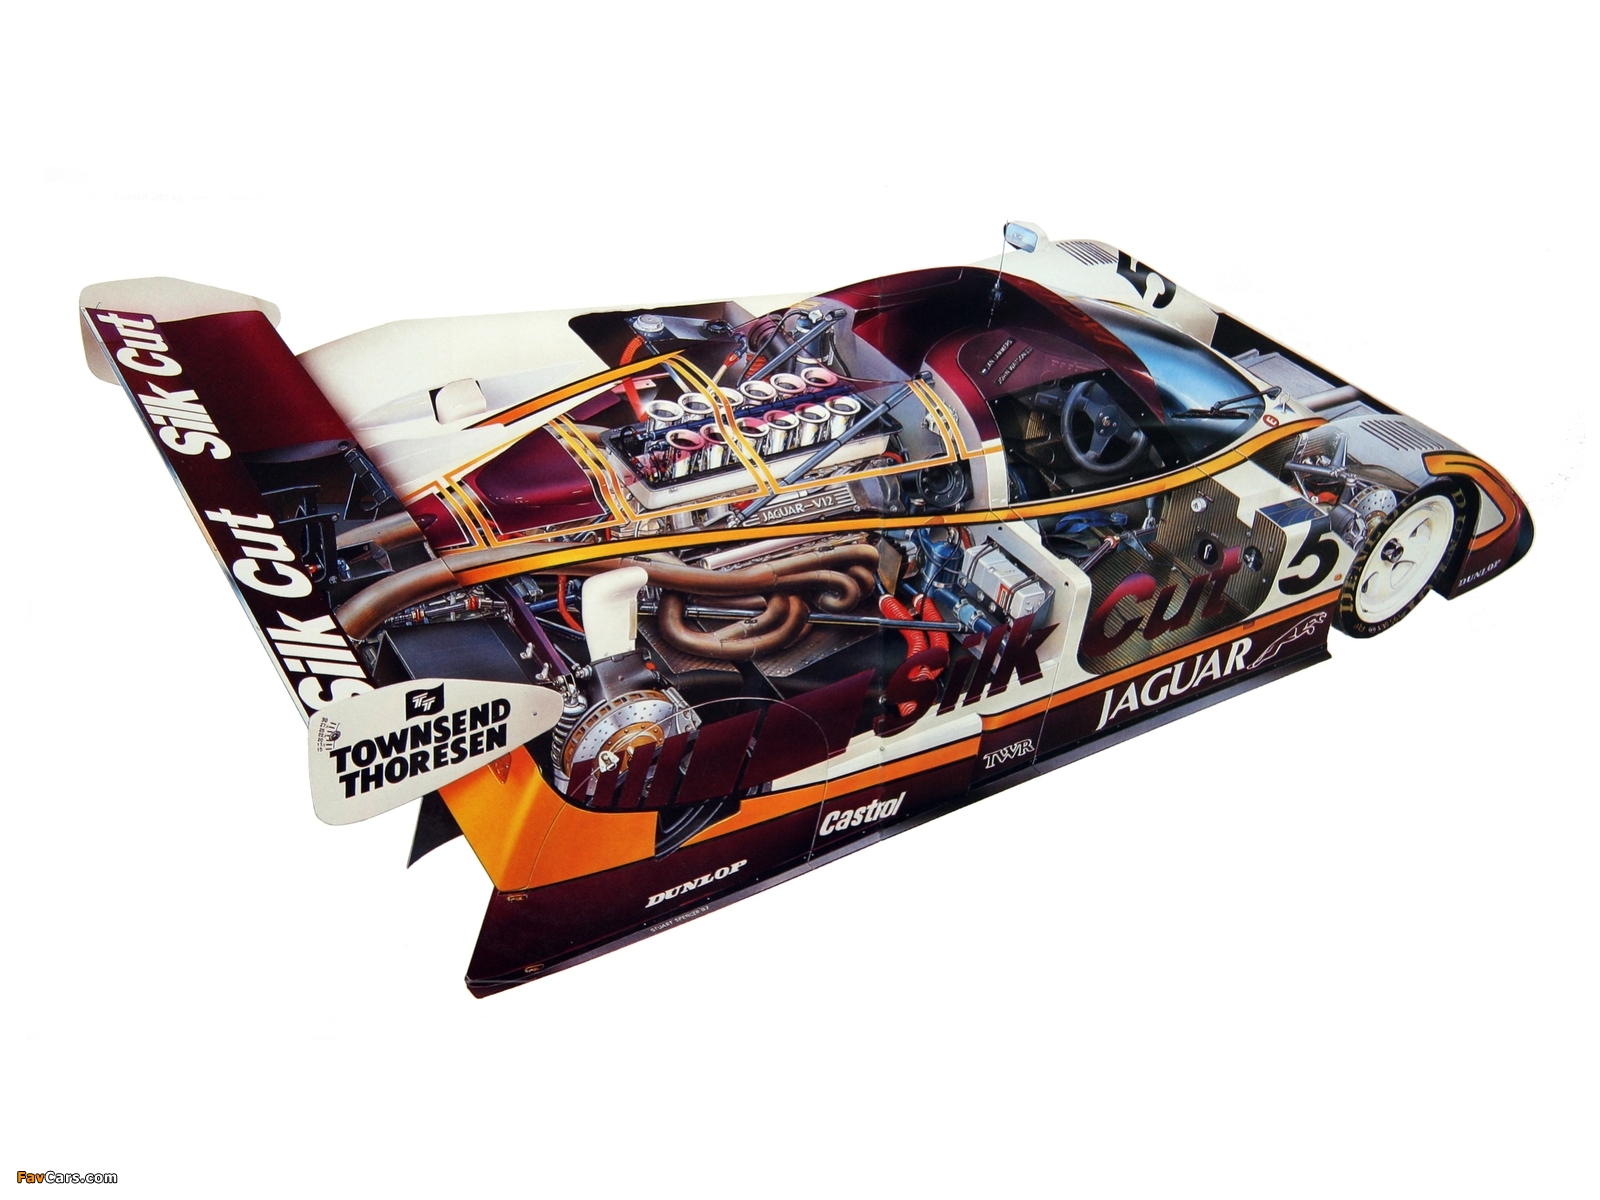 photos_jaguar_xjr_race_car_1988_1.jpg